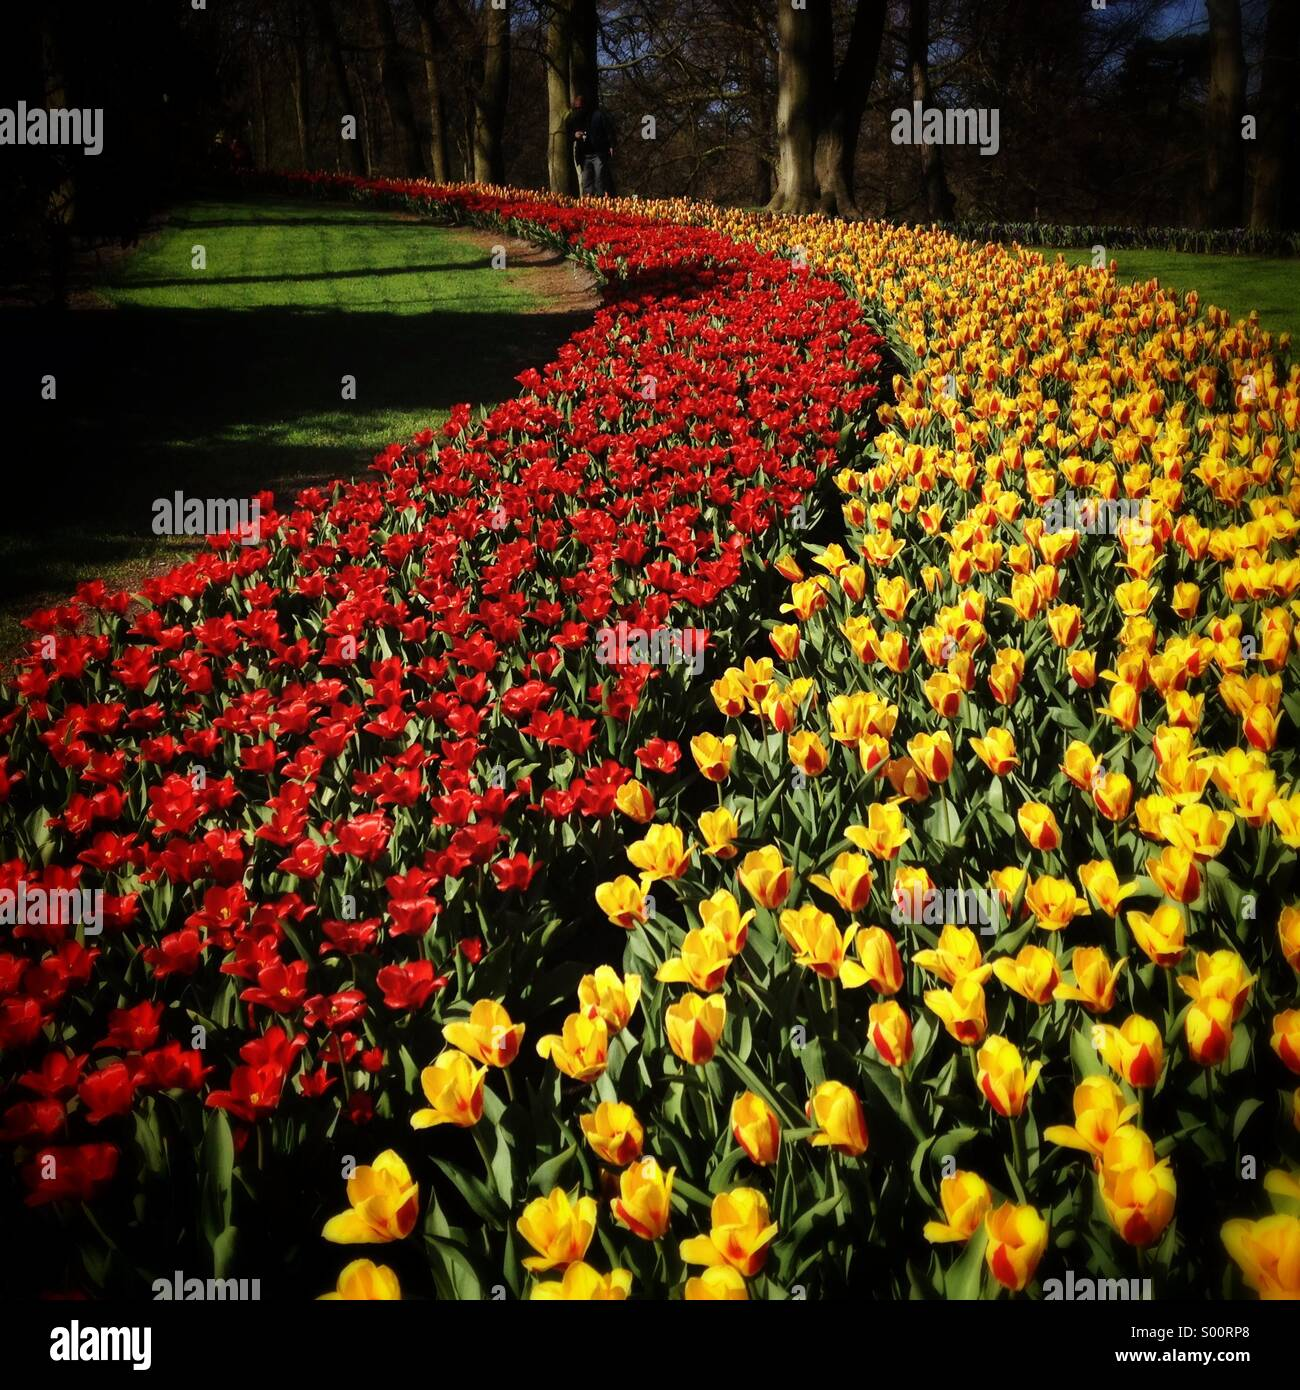 Tulips blooming - Stock Image